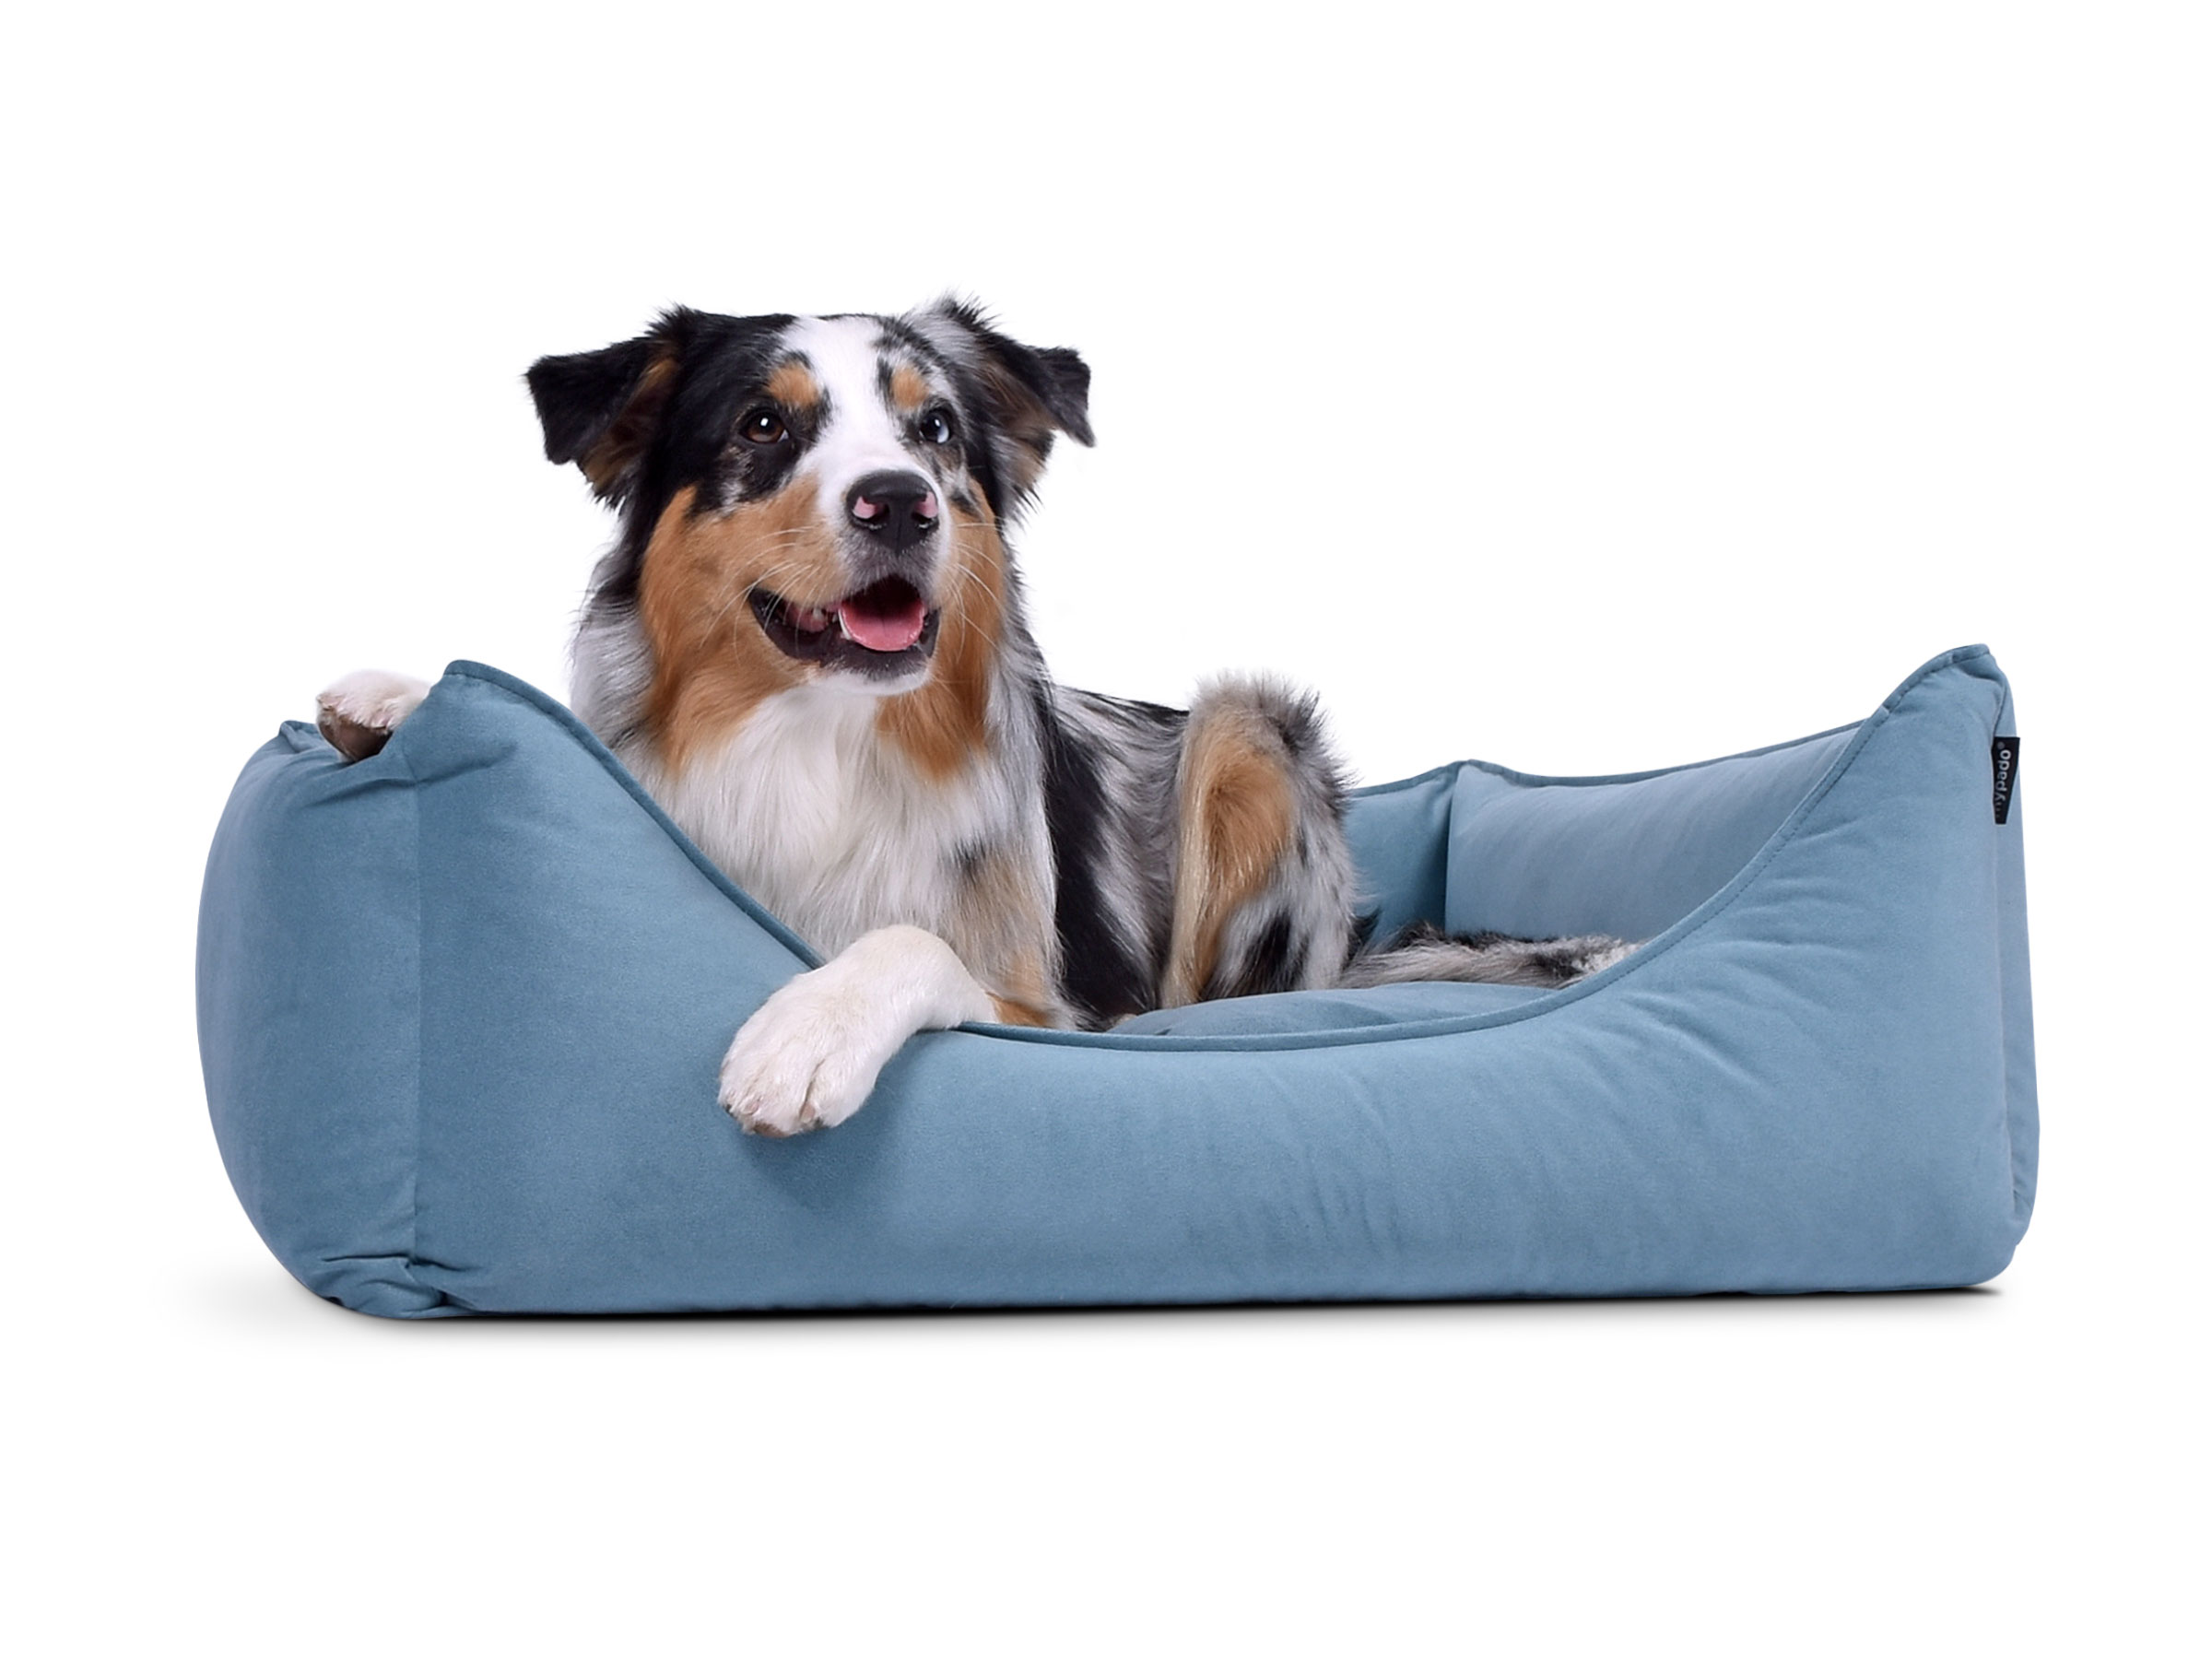 hundebett-dreamcollection-wildlederimitat-hellblau-06